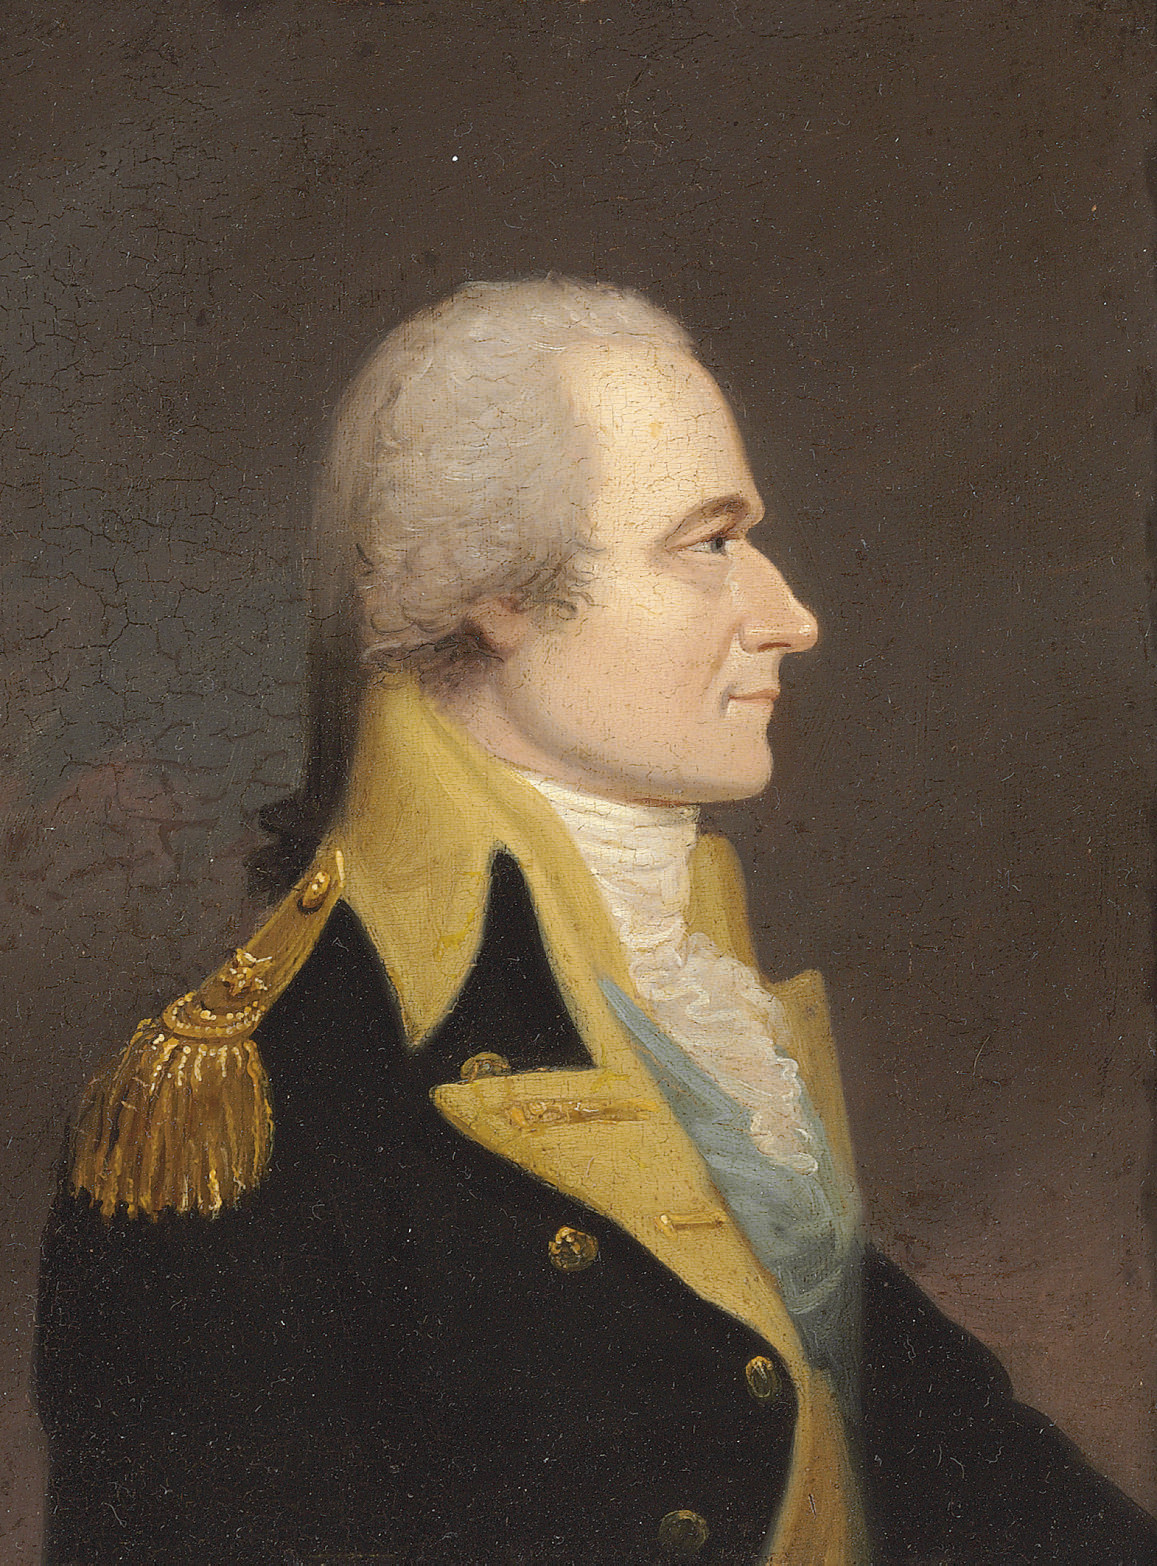 William J. Weaver (1759-1817),